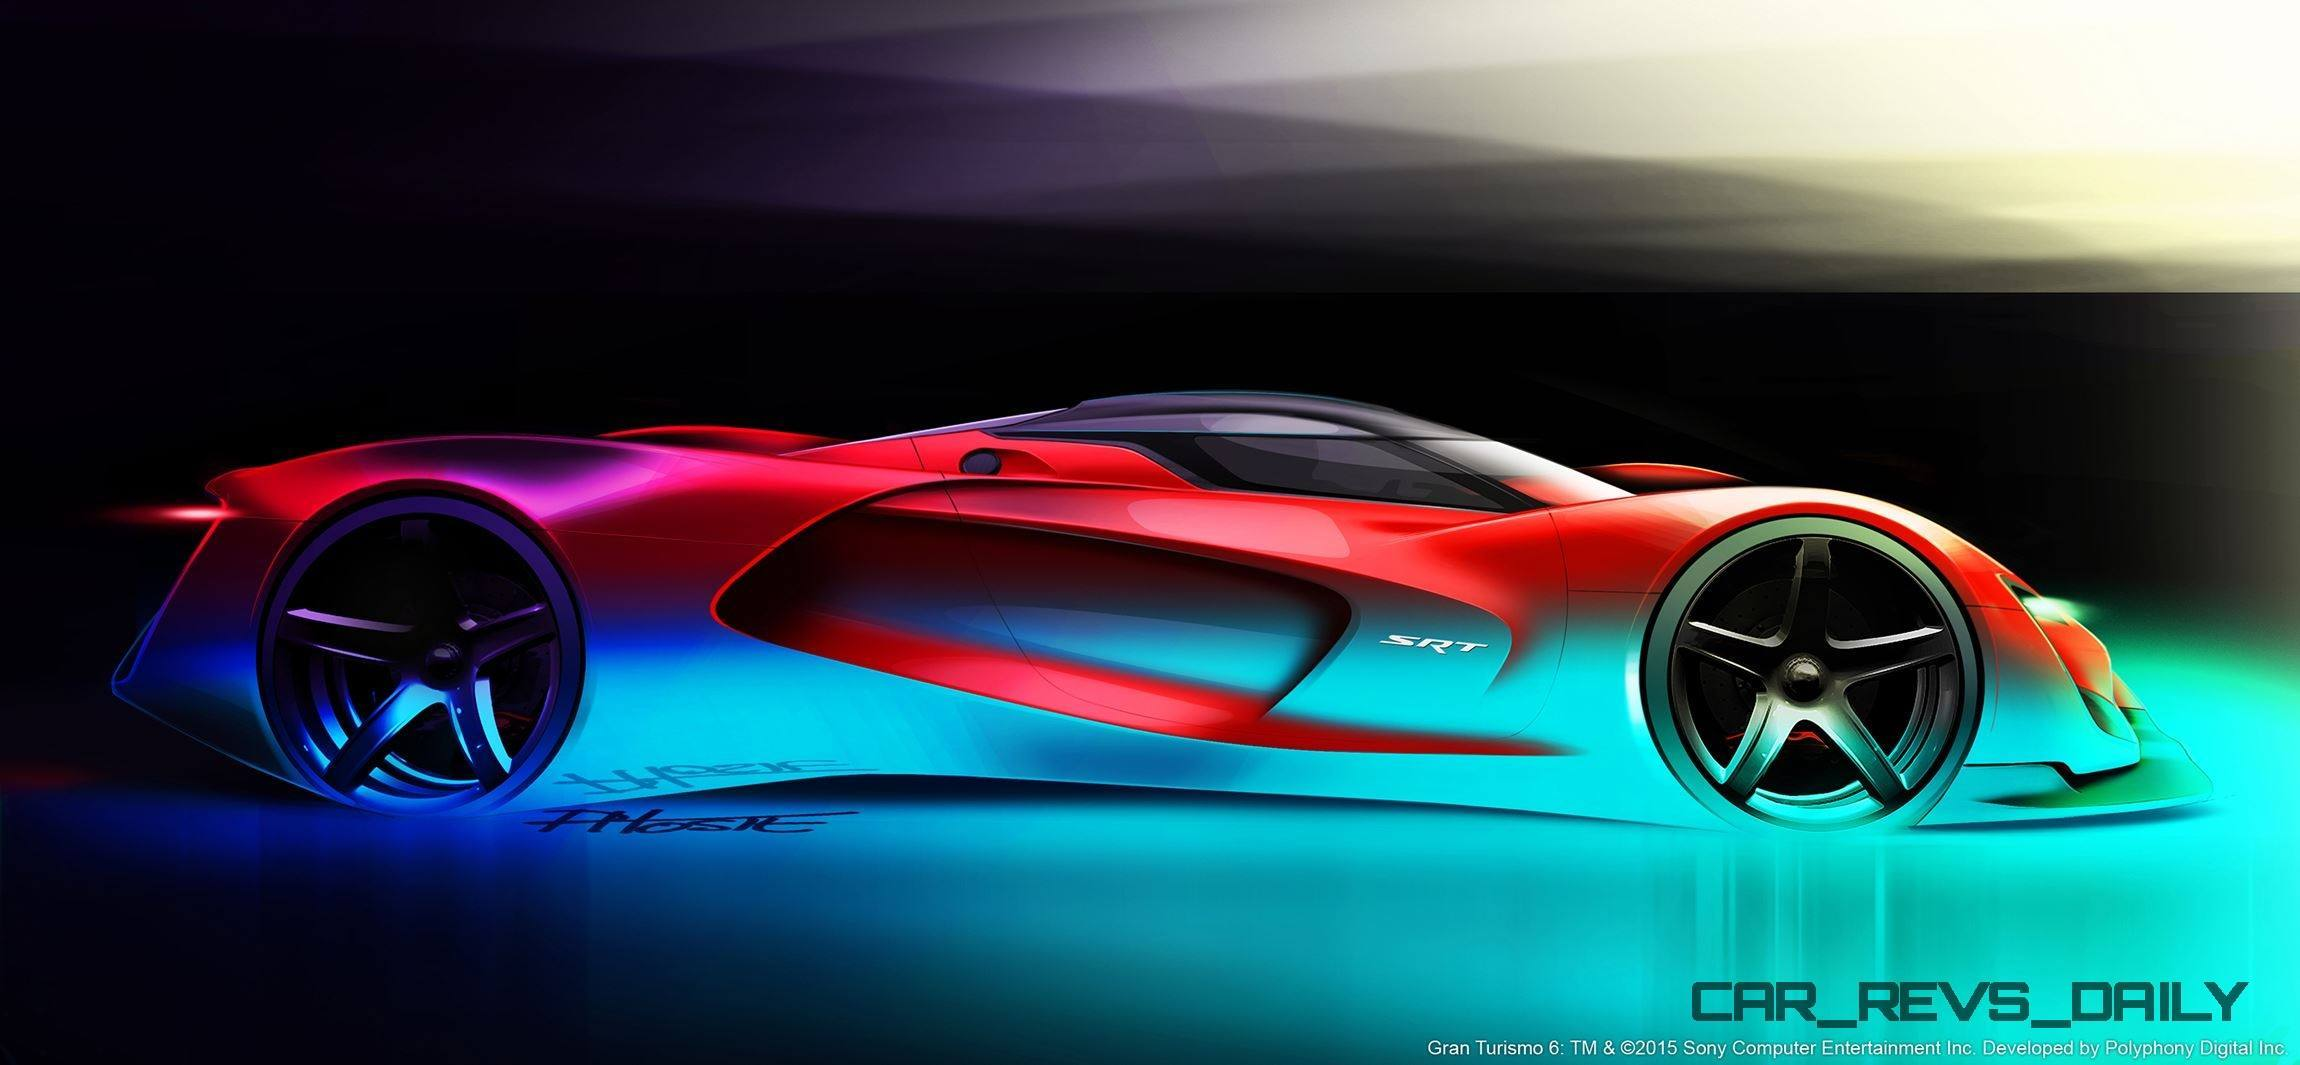 srt tomahawk vision gran turismo concept side view sketch. Black Bedroom Furniture Sets. Home Design Ideas